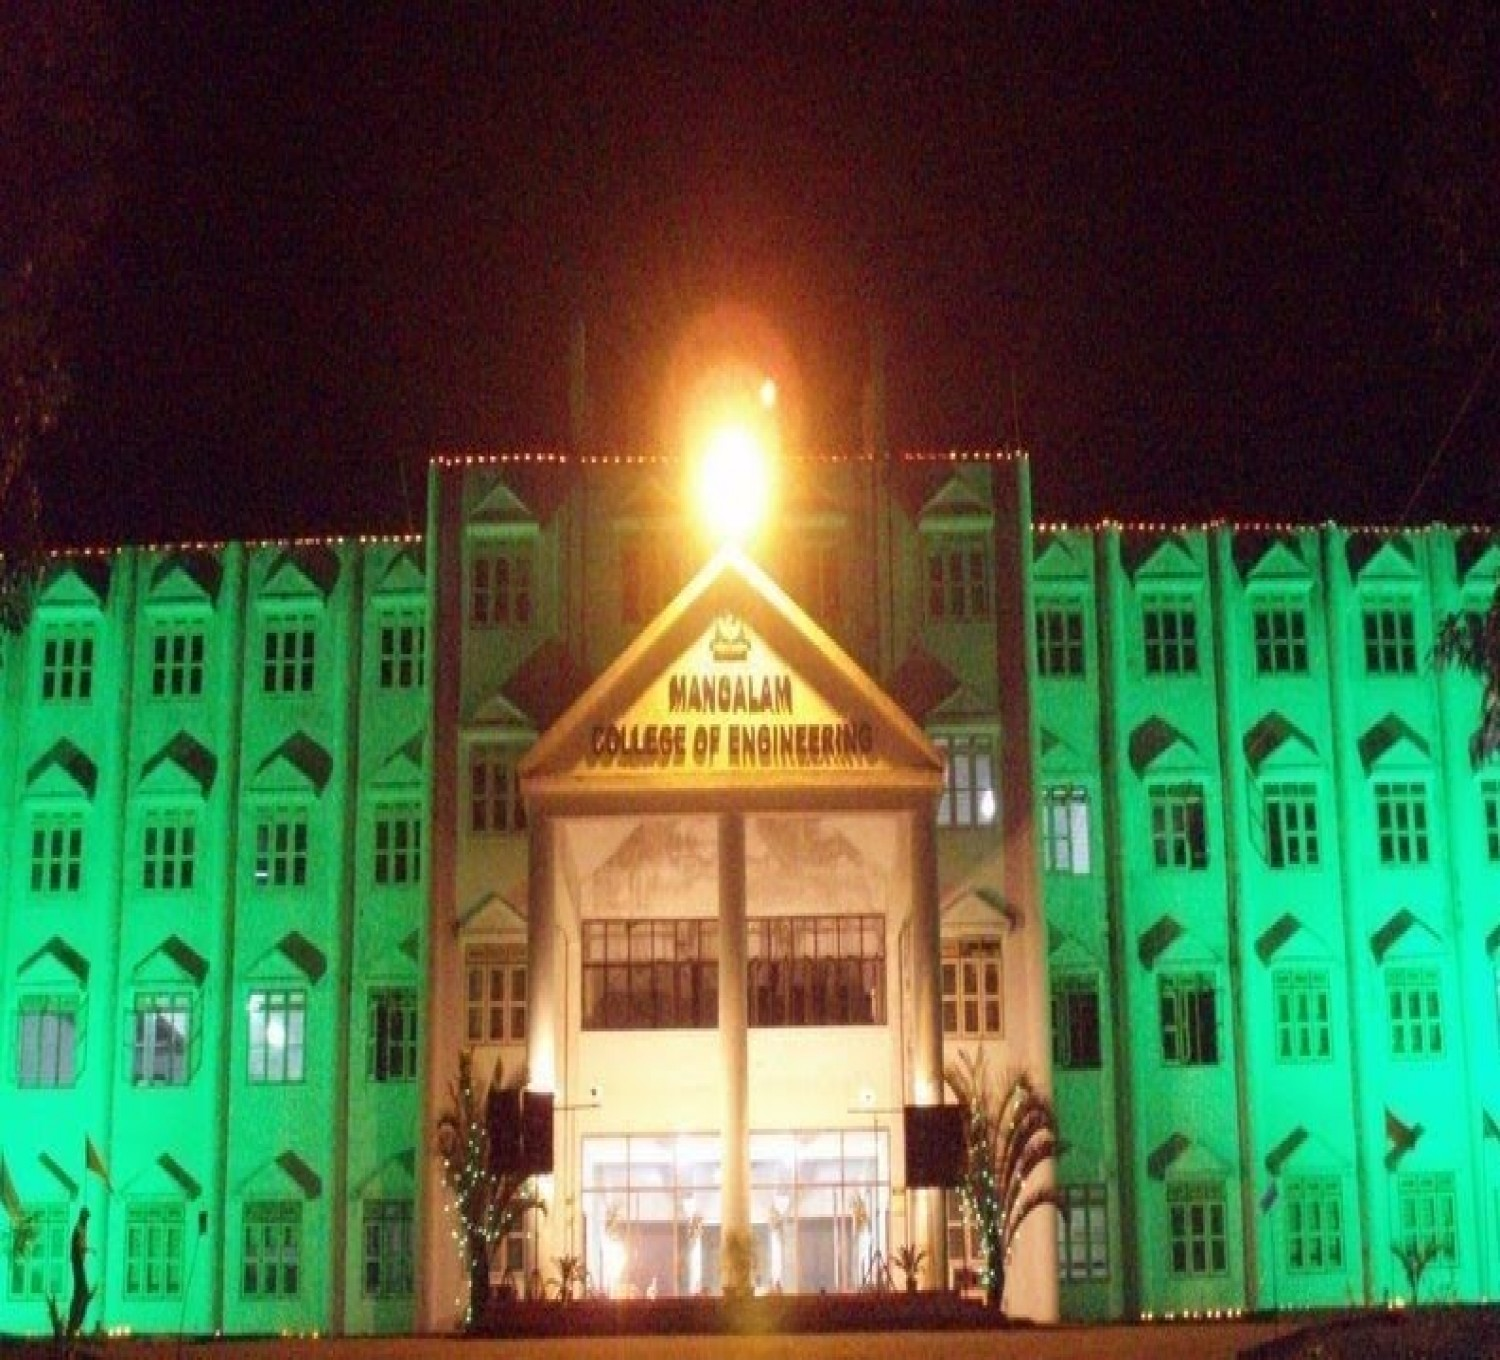 Mangalam College of Engineering-cover